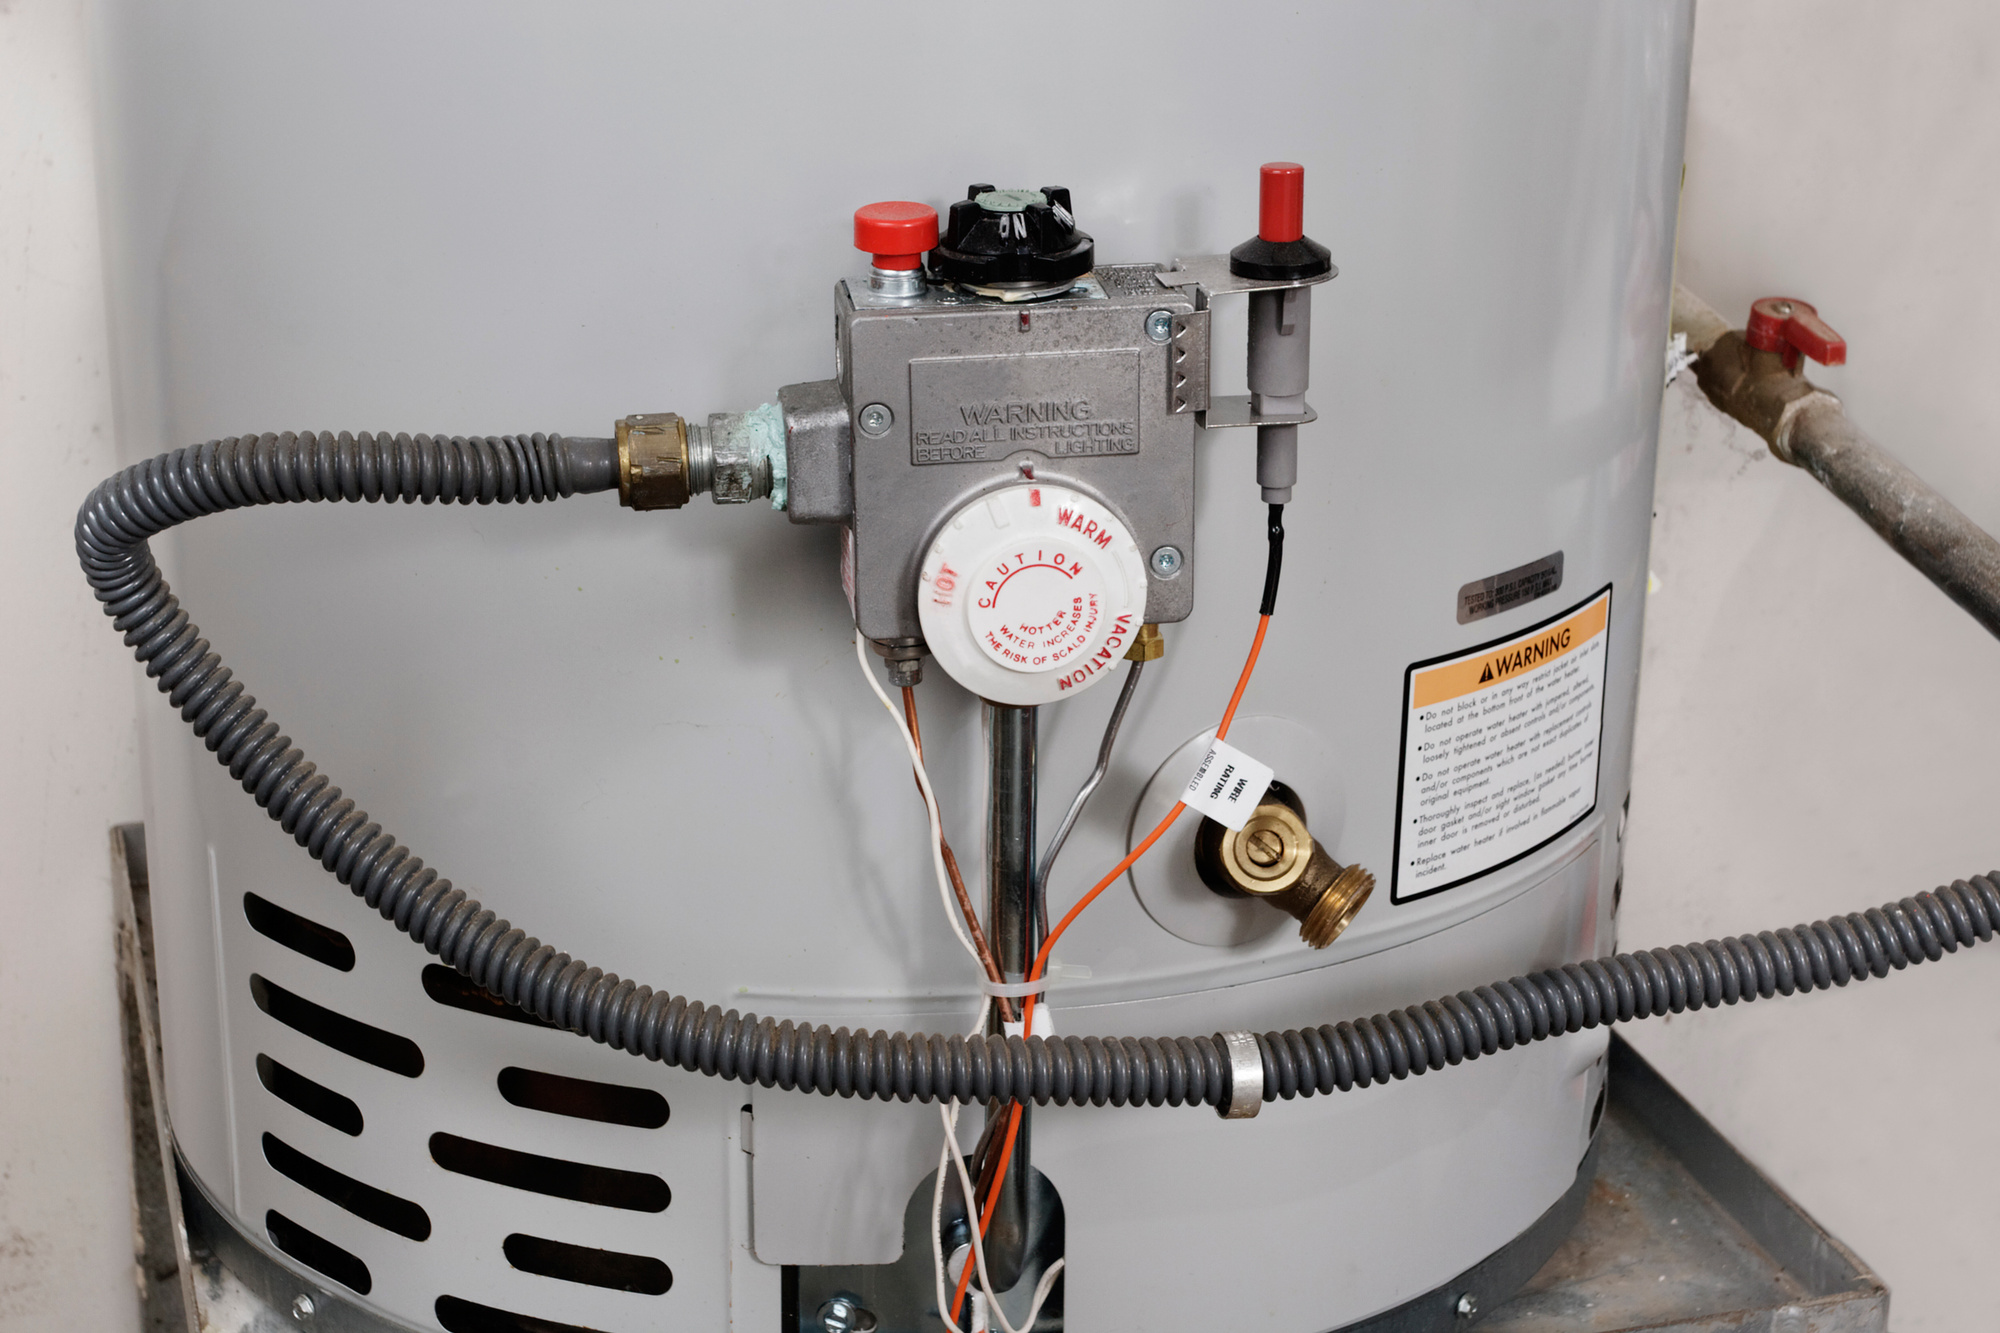 Phone a Plumber: How Much Does a Plumber Charge to Drain a Water Heater?